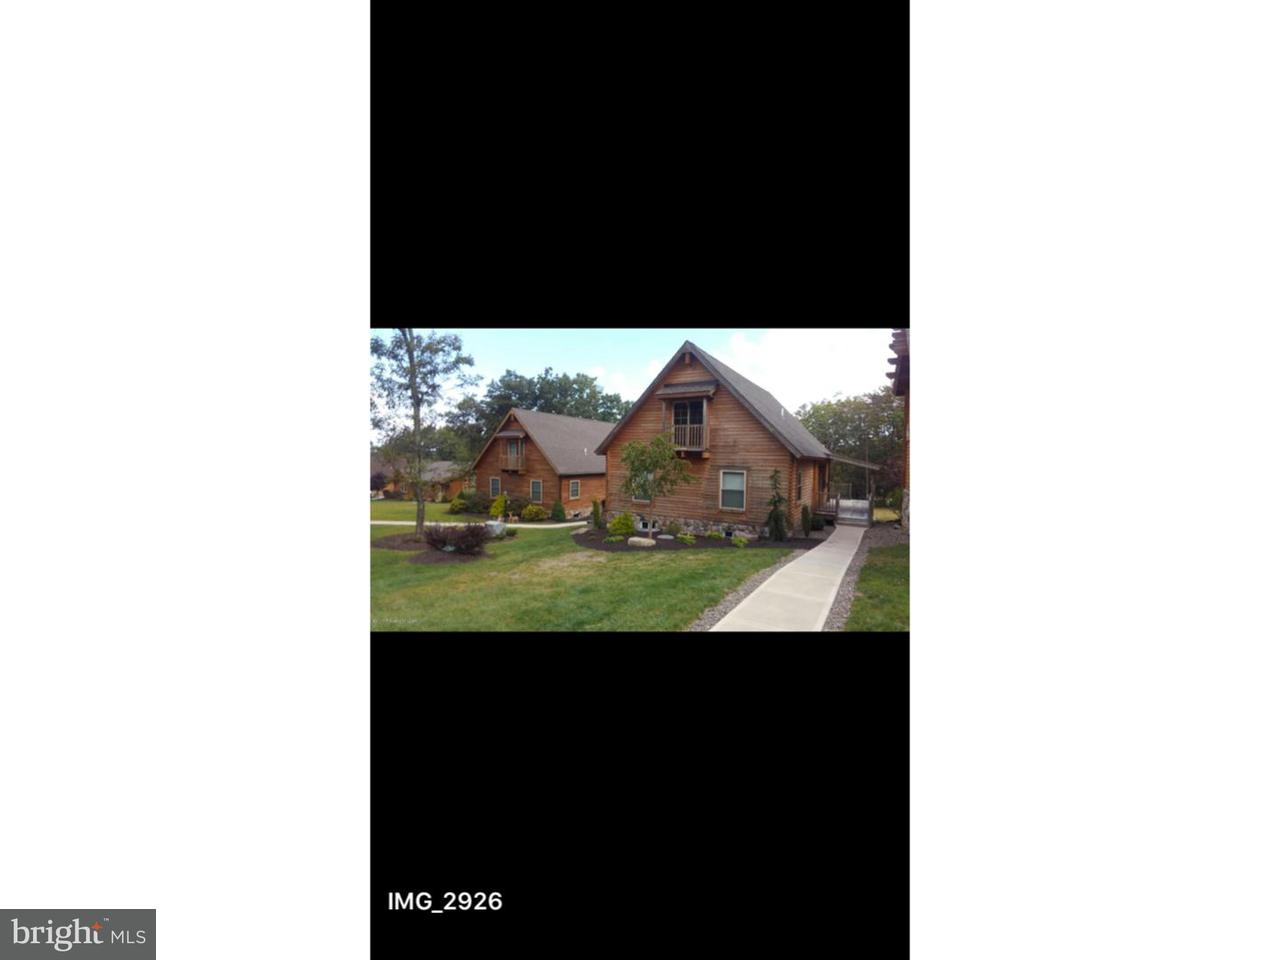 Single Family Home for Sale at 20 SUGARLOAF Lane Hazleton, Pennsylvania 18202 United States